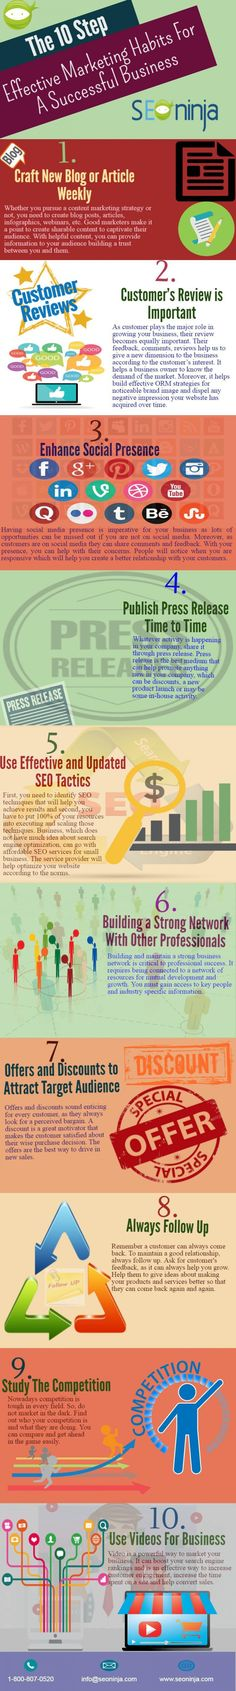 To bring out the best of every business, it is very important to have the right set of online marketing services. Understanding the various tactics involved and ways it fetches profits is something every entrepreneur should know.